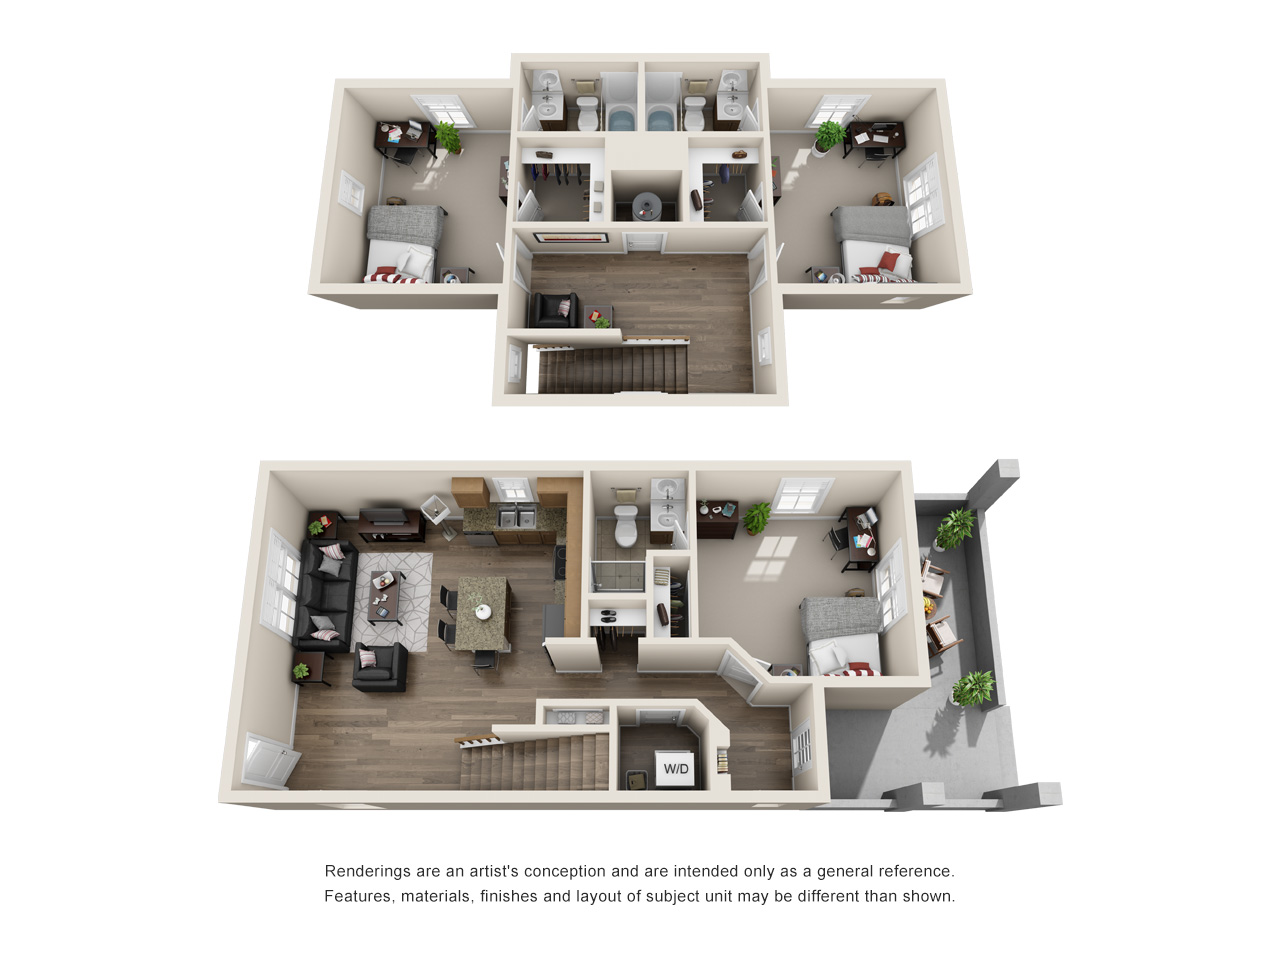 Floor plan of a 3 bed, 3 bath student apartment